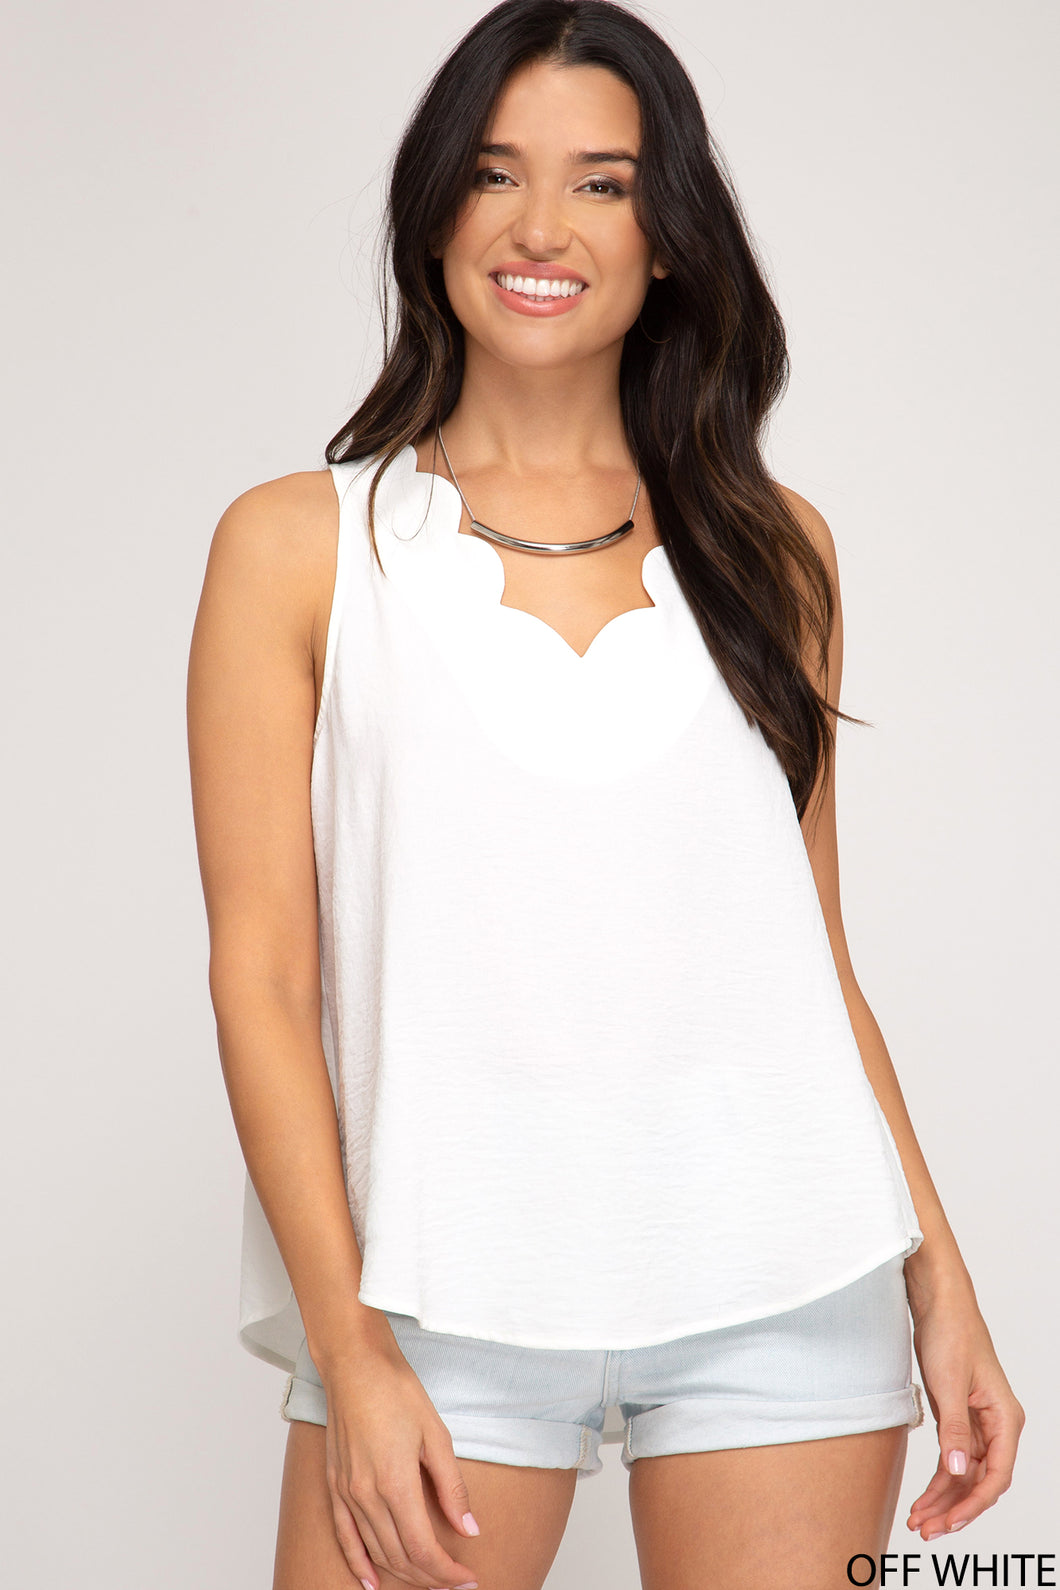 Scalloped Sleeveless Beauty - The Dainty Cactus Boutique